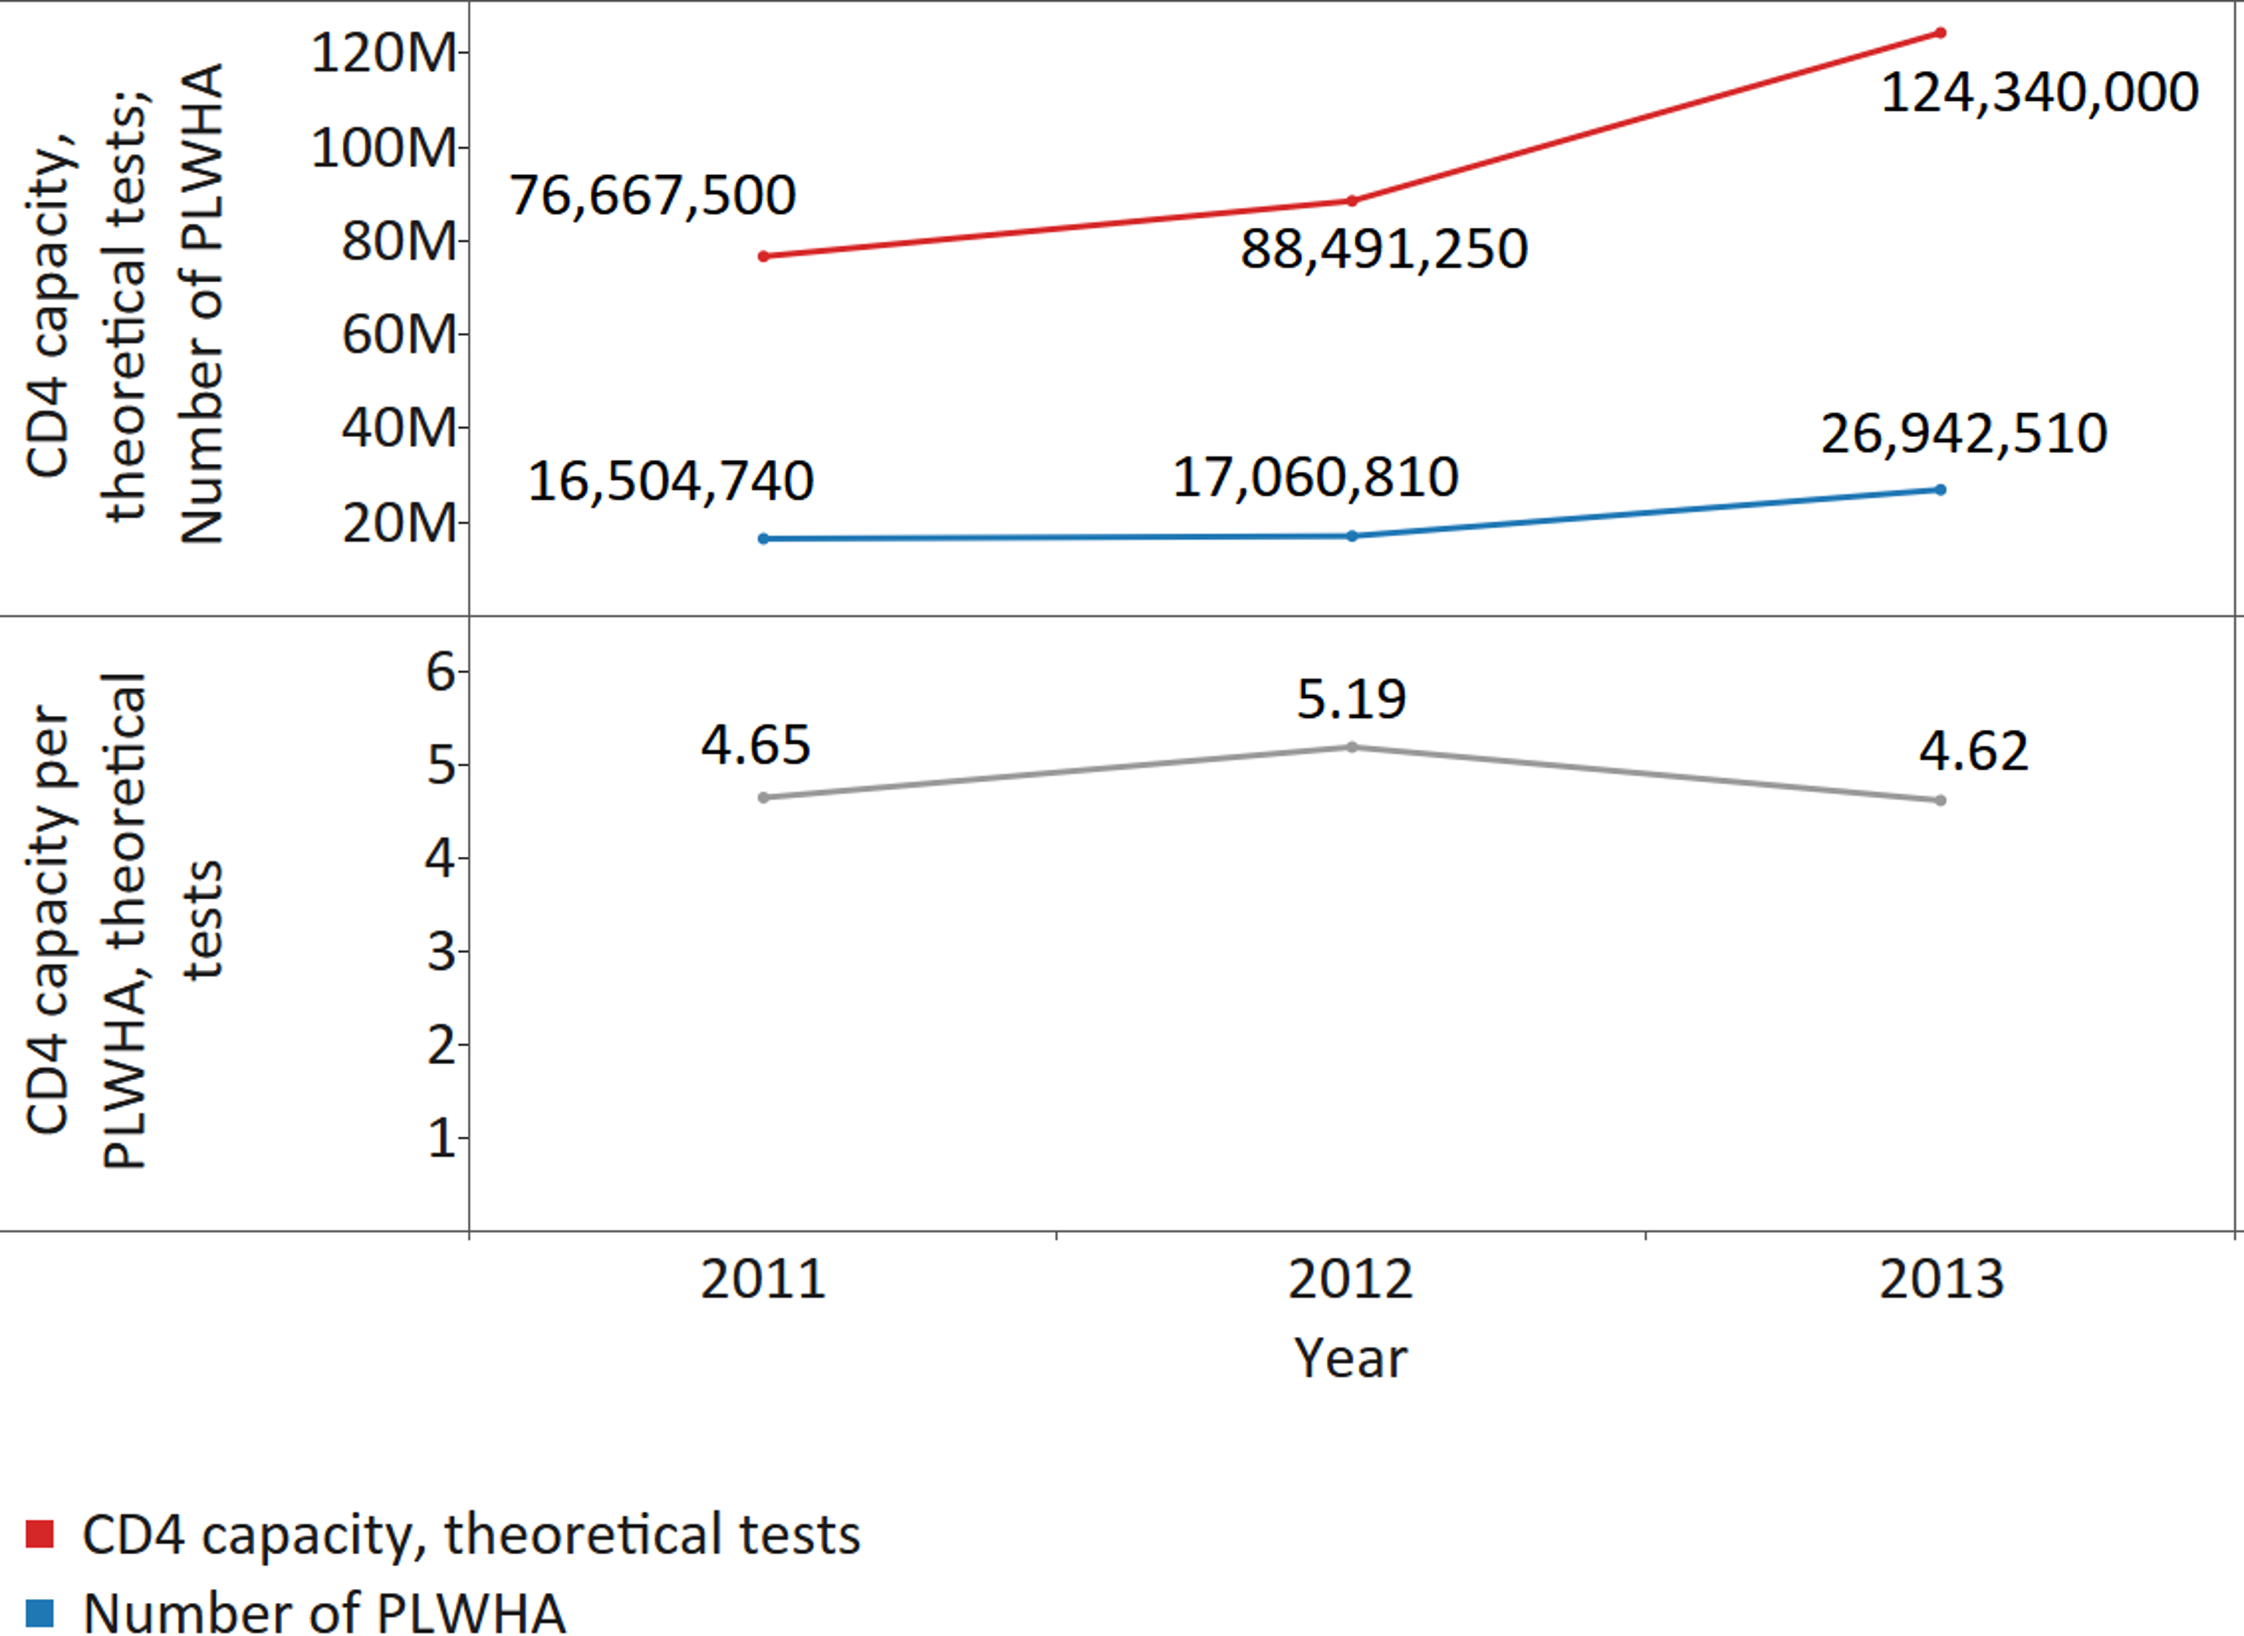 CD4 capacity per people living with HIV/AIDS (PLWHA), for all reporting countries.